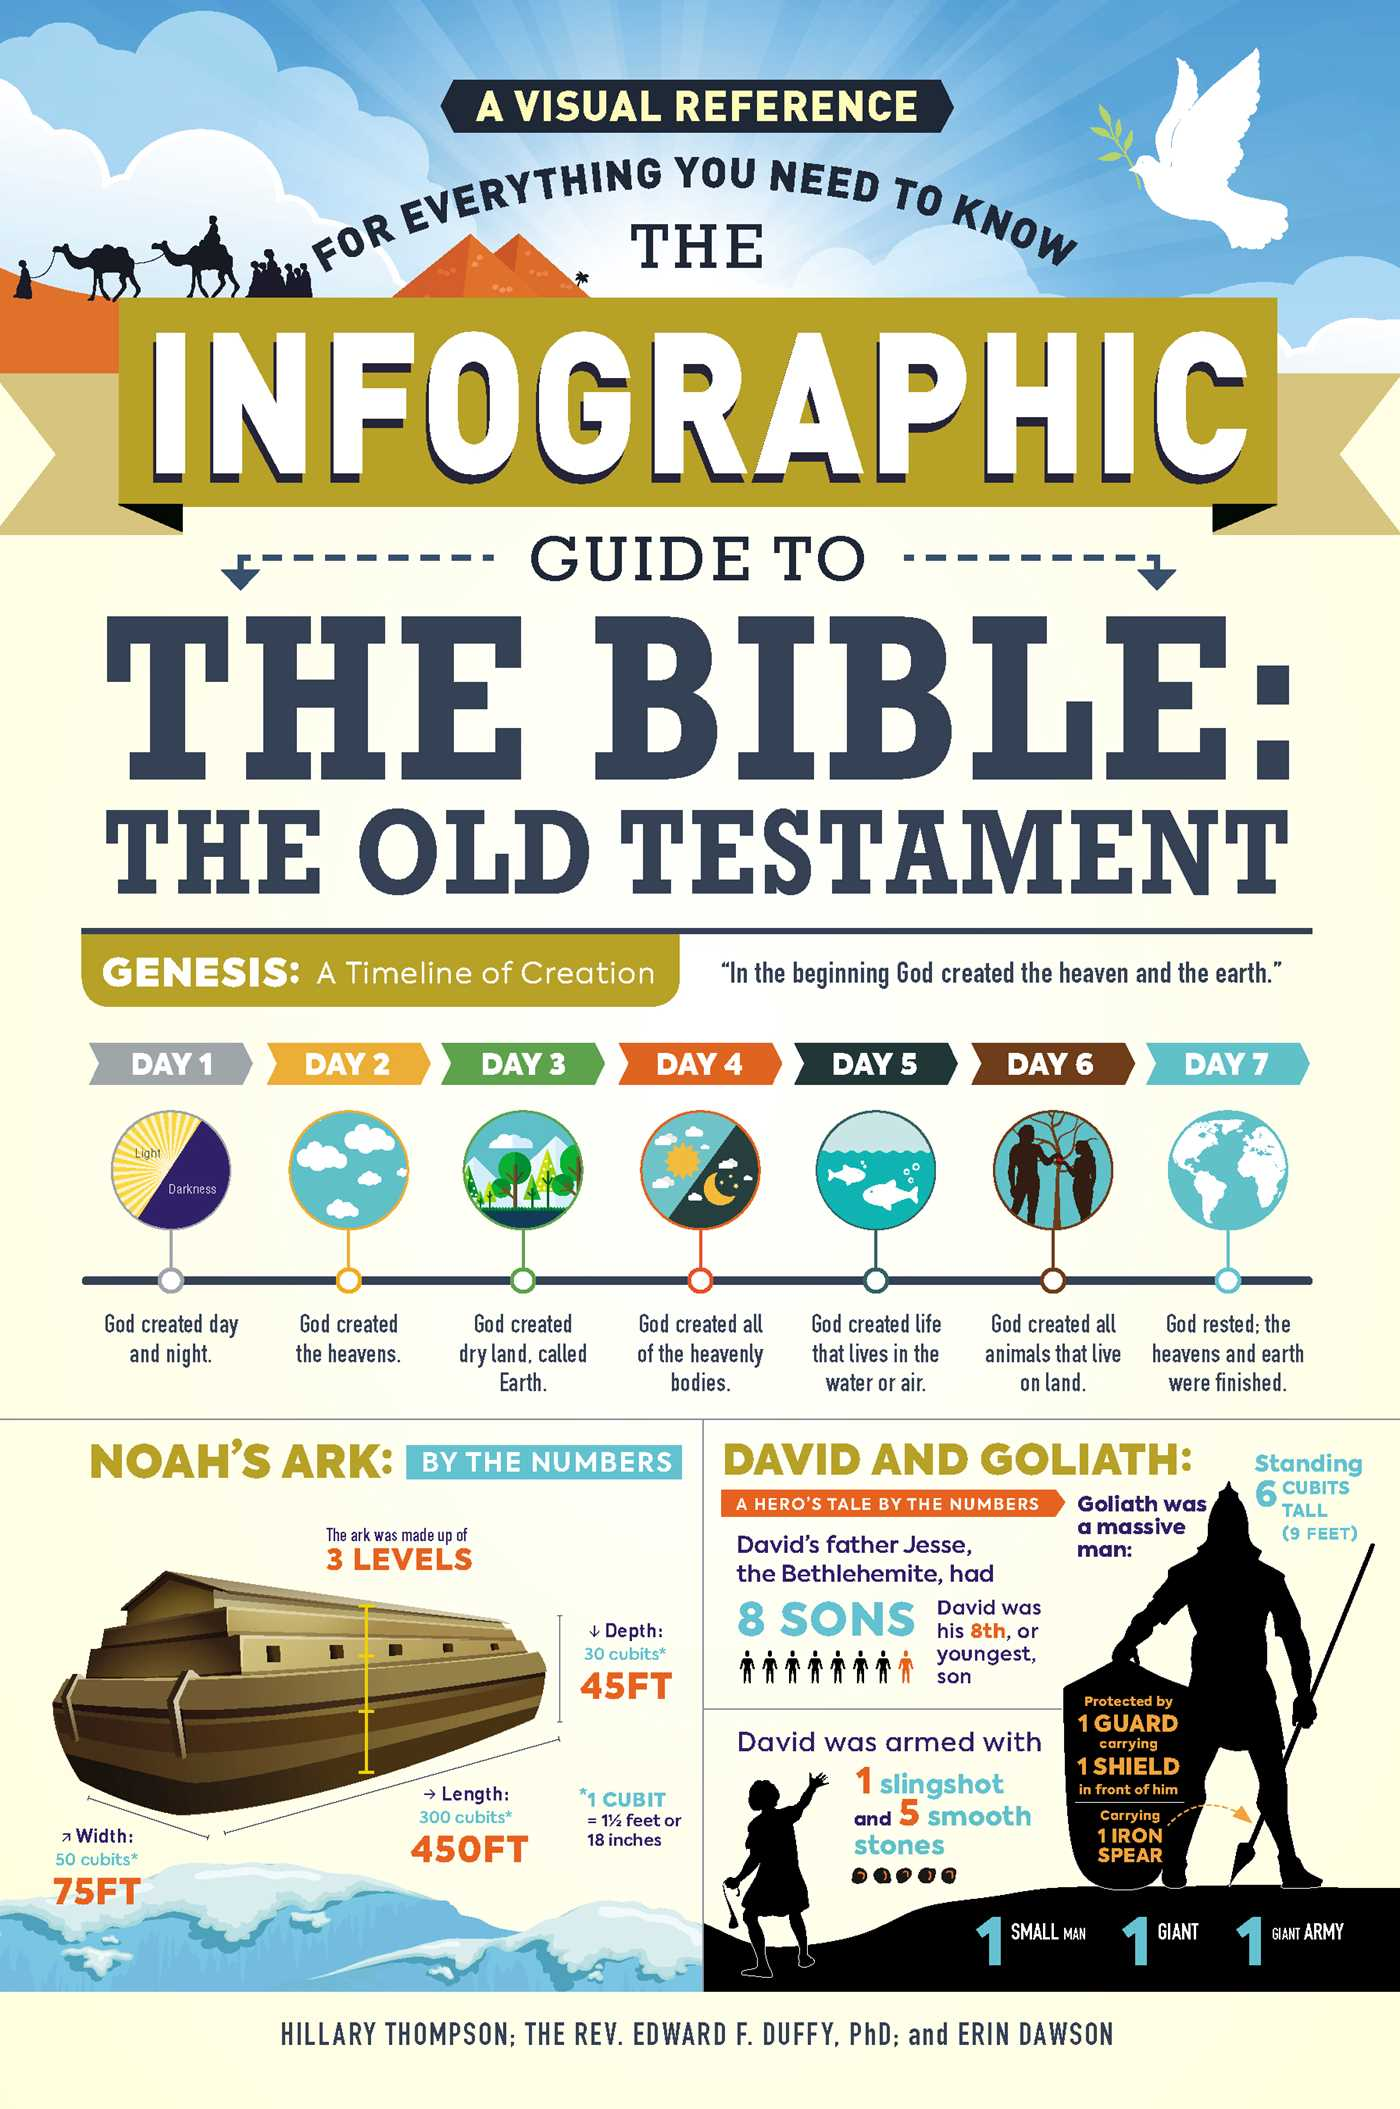 The infographic guide to the bible the old testament 9781507204870 hr